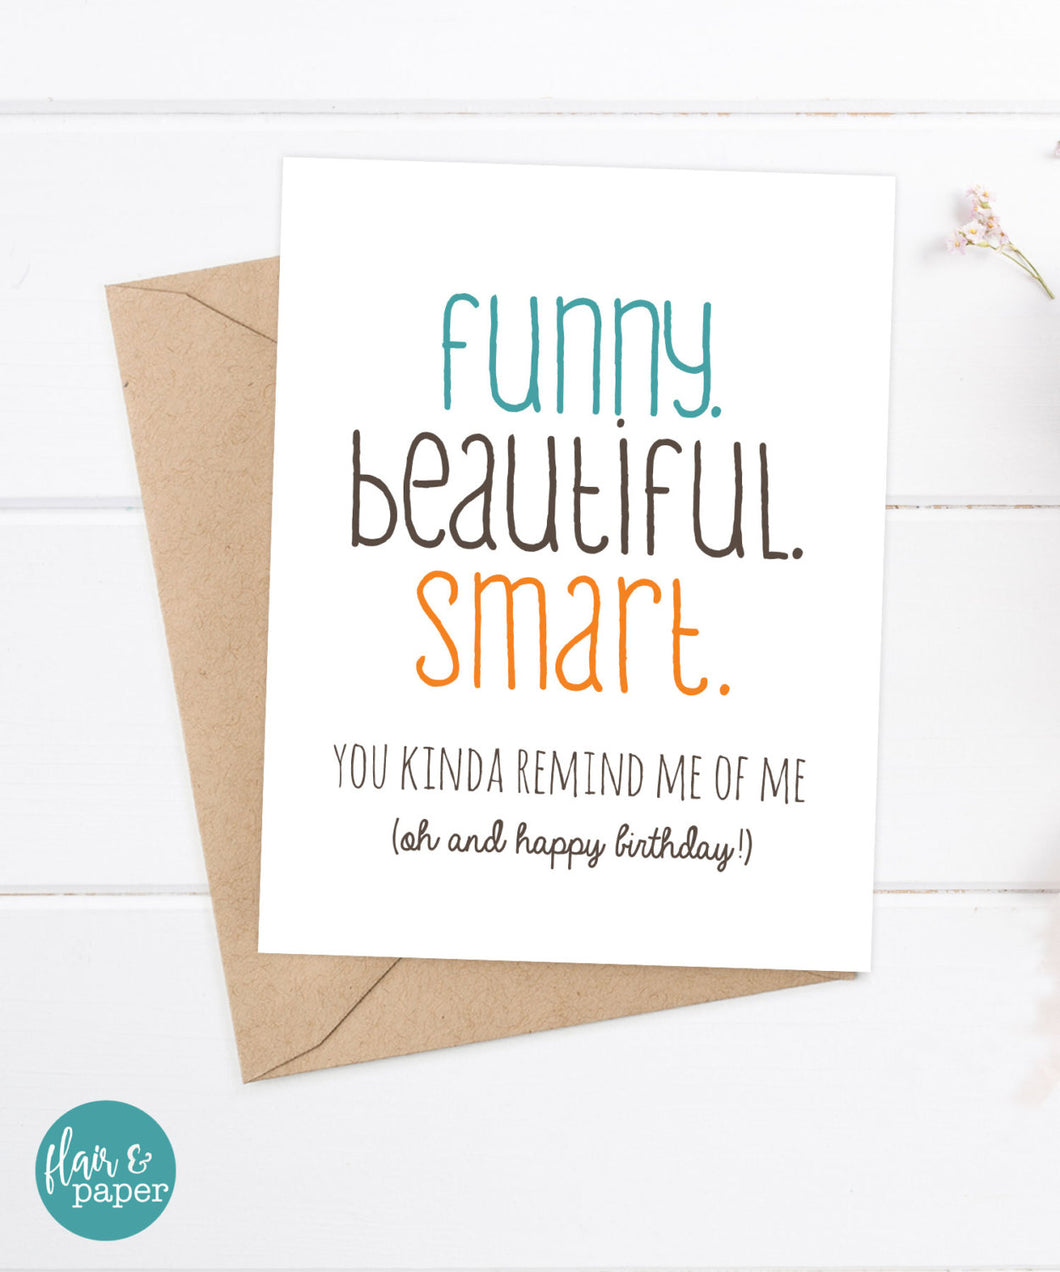 Funny Beautiful Smart. You kind remind me of me (oh and happy birthday!)